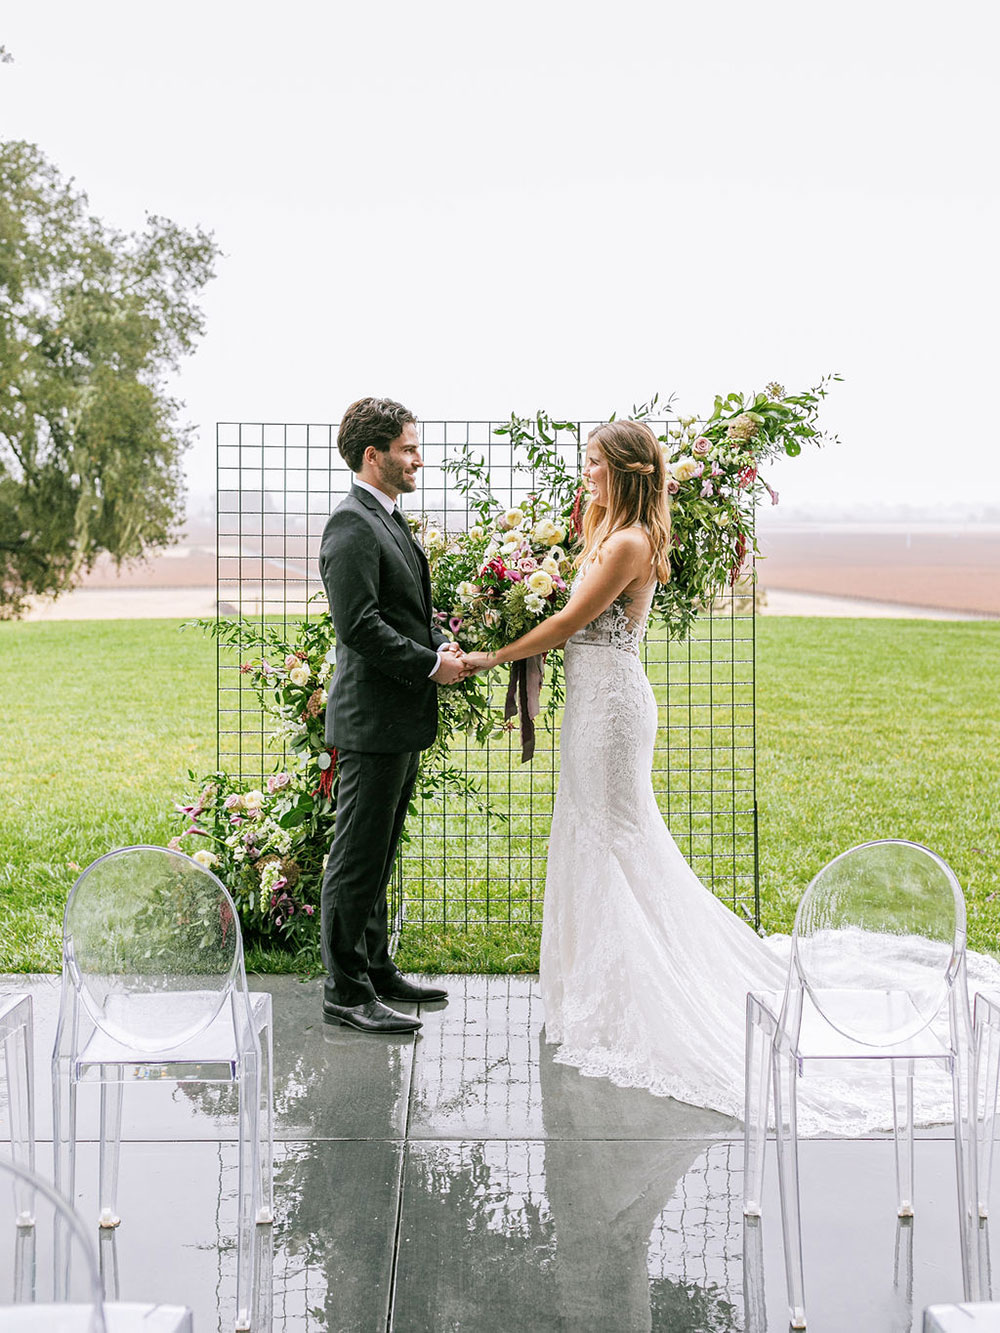 The wedding backdrop was an ethereal floral and greenery one made on a grid, and the chairs were ghost ones